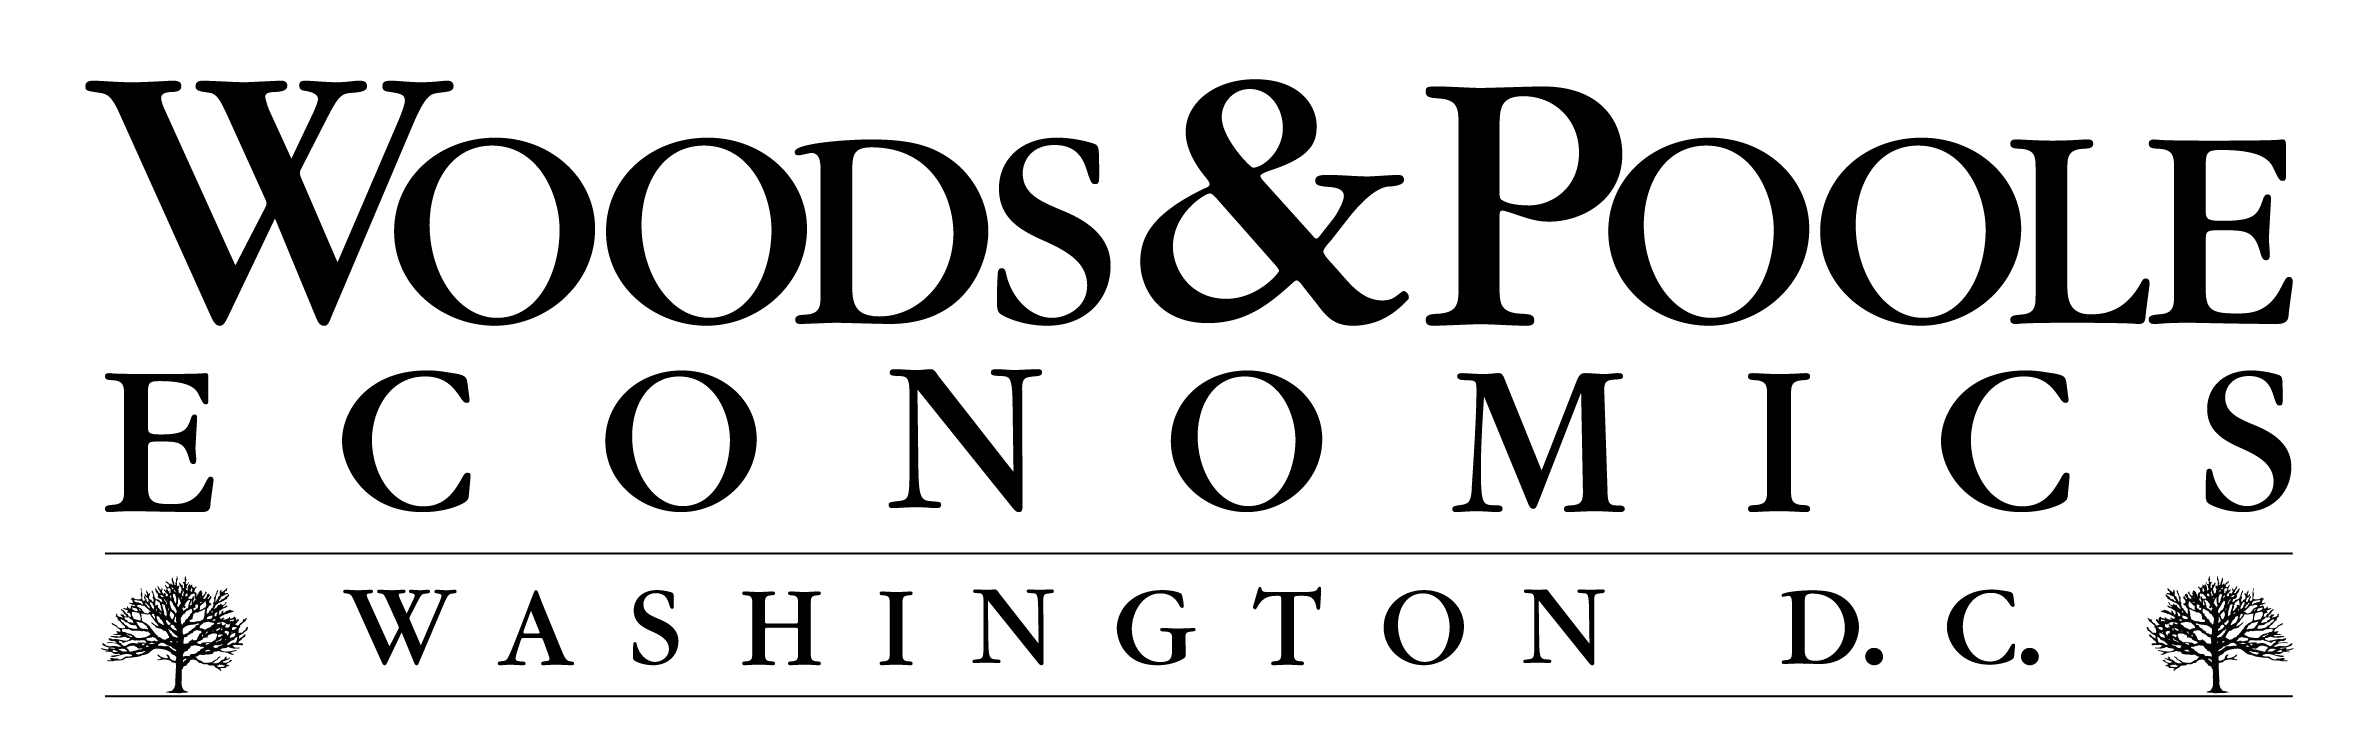 FORT MADISON-KEOKUK IA-IL-MO (FIPS 22800) | Woods & Poole Economics, Inc